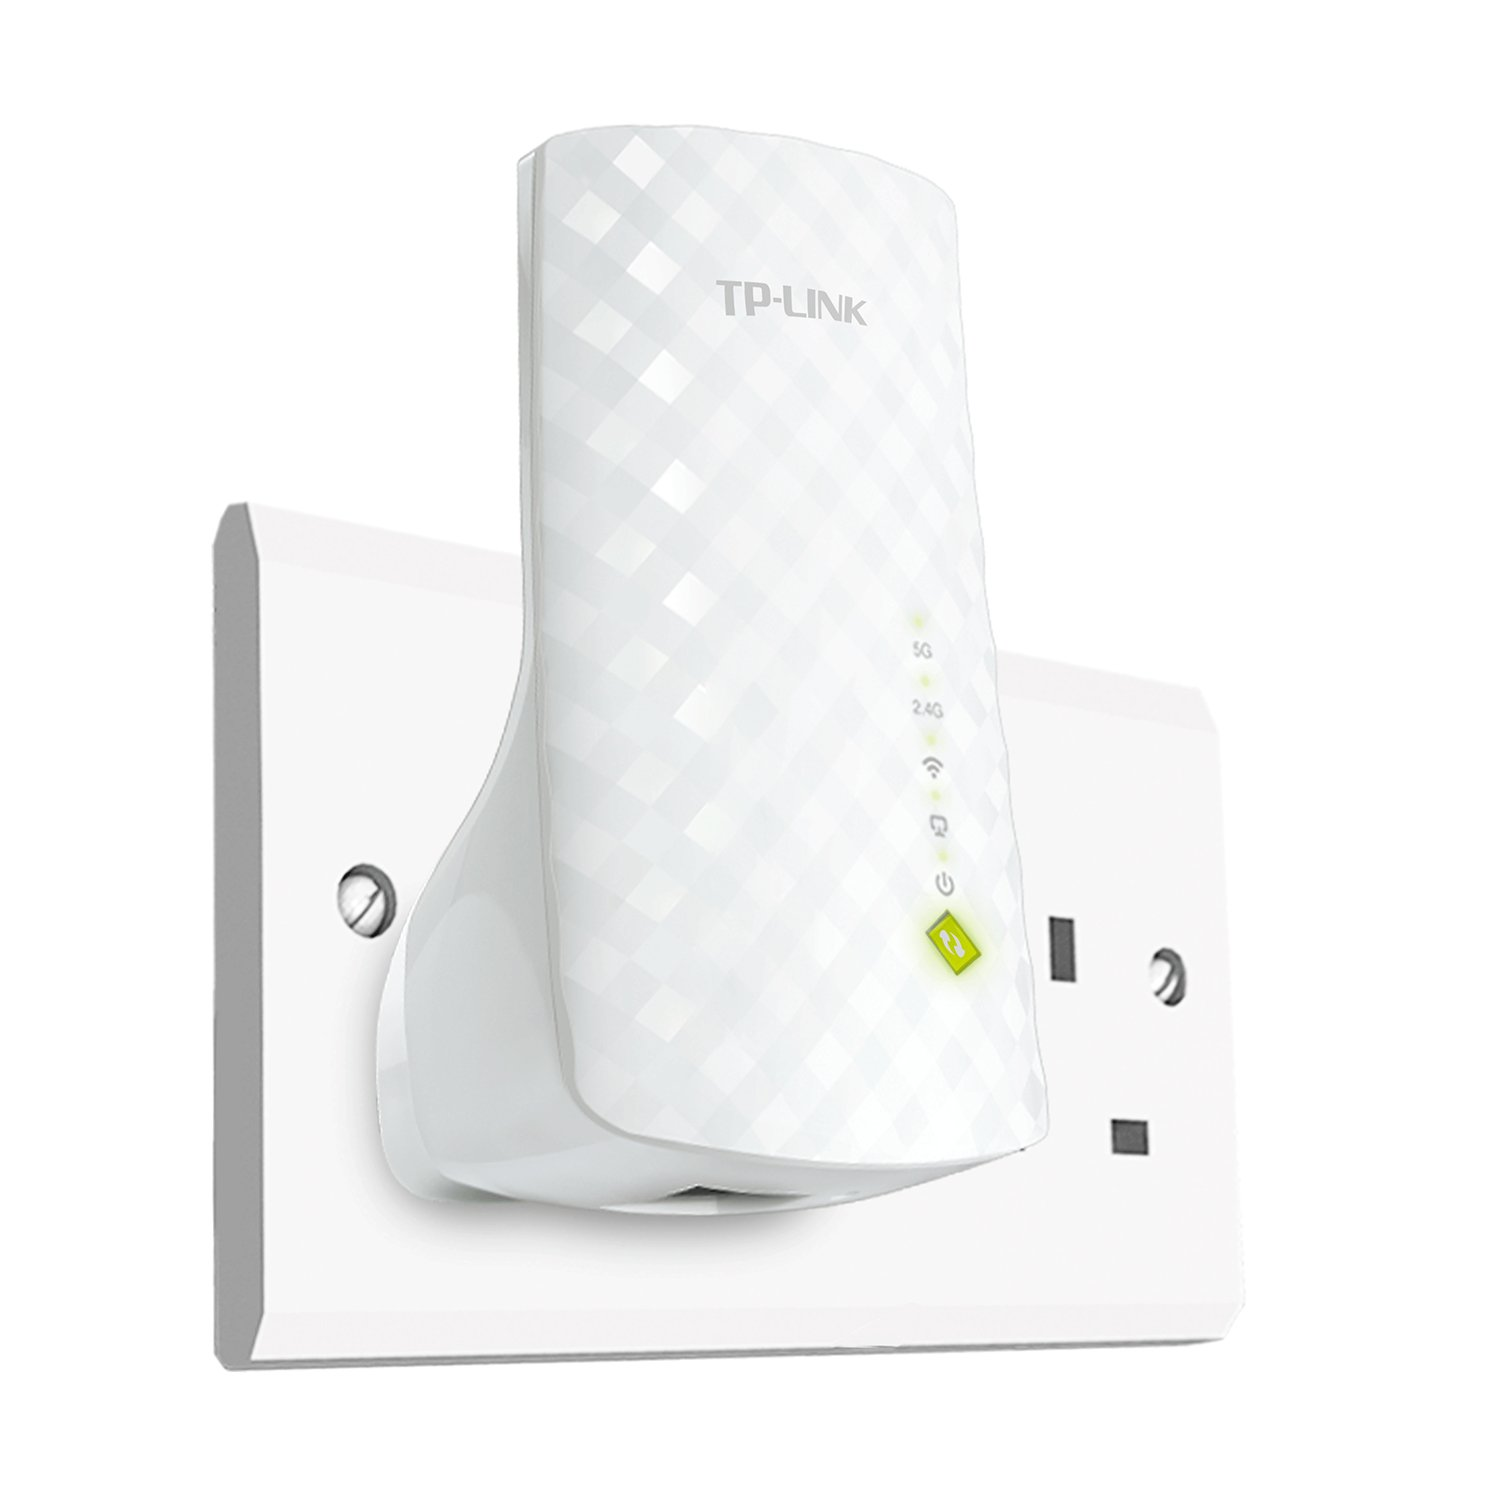 TP-Link RE200 AC750 Universal Dual Band Range Extender Plug and Play UK Plug Wi-Fi Booster//Hotspot with Ethernet Port Smart Signal Indicator Broadband//Wi-Fi Extender